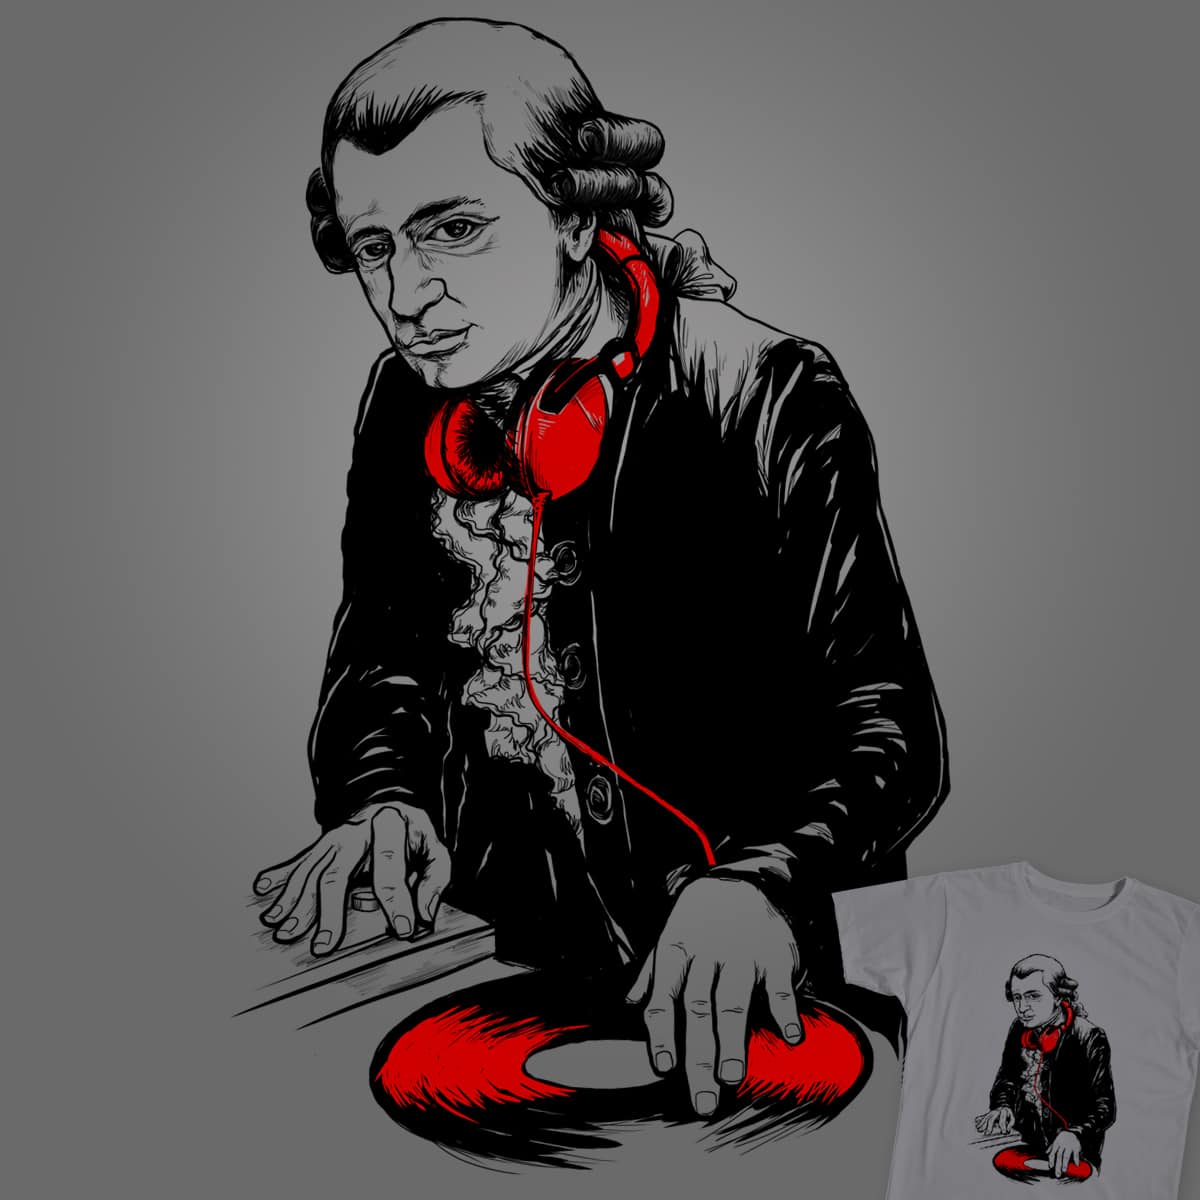 MUSIC IS MOZART by ogie1023 on Threadless